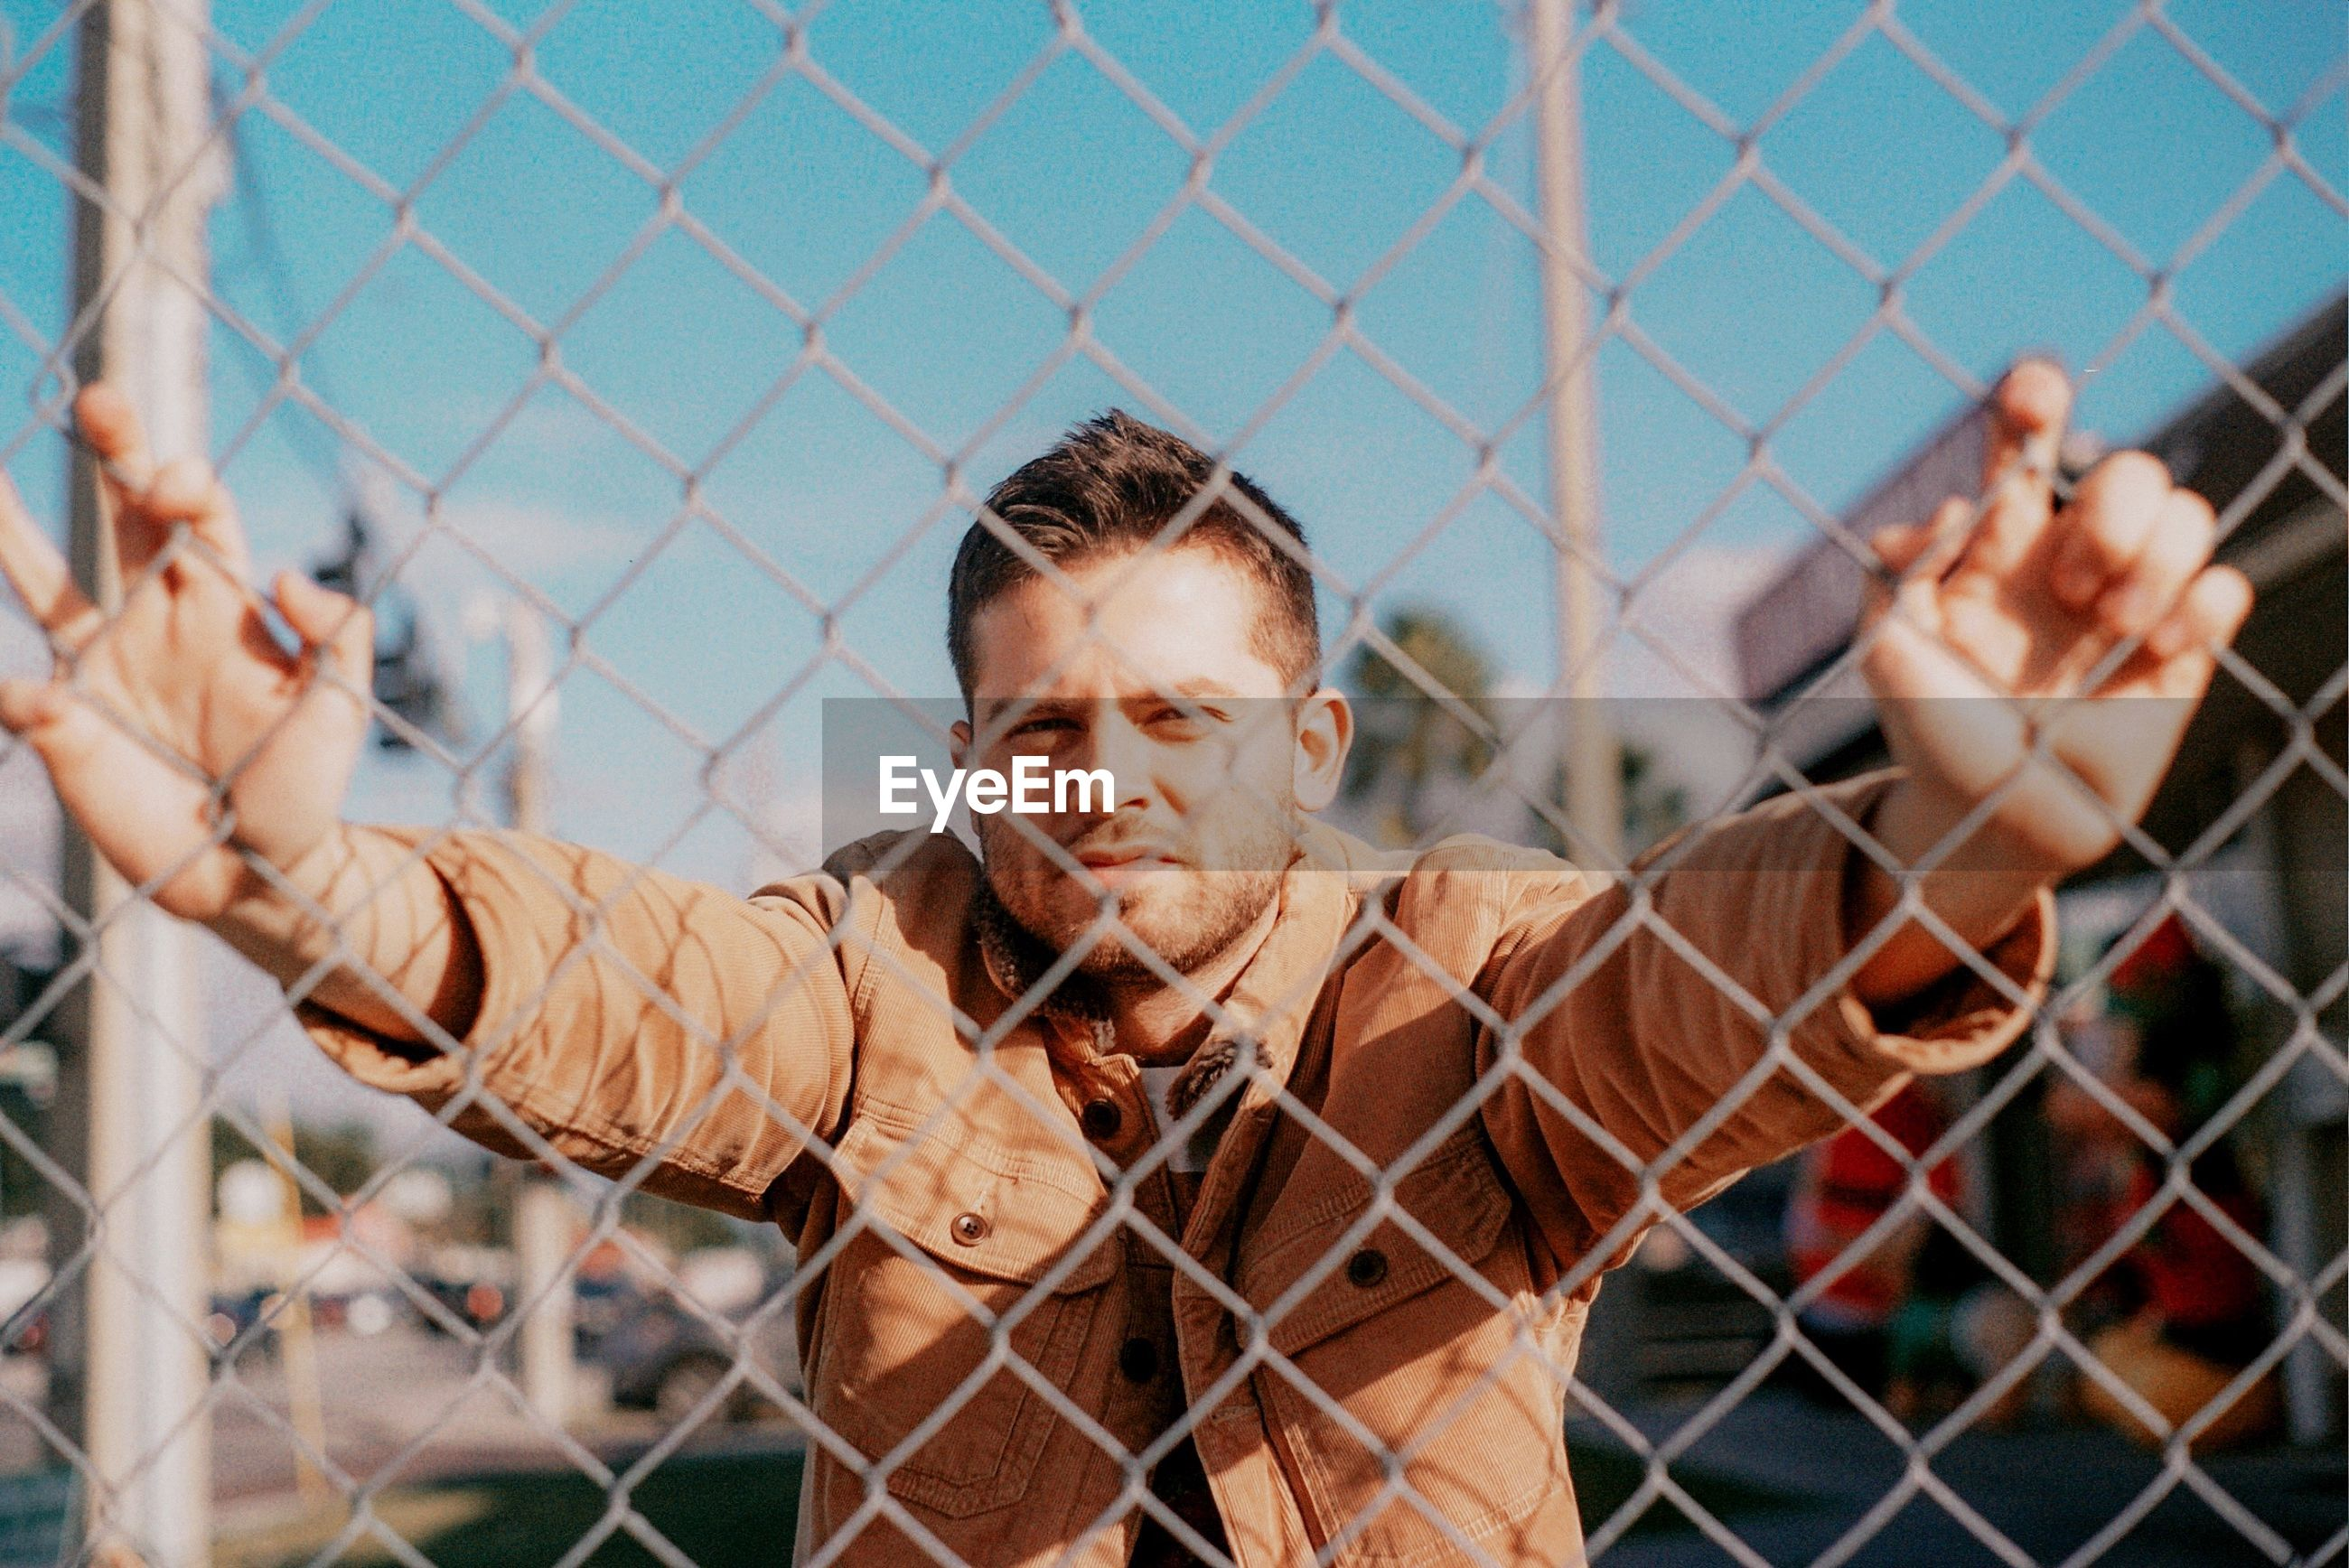 Portrait of man with arms raised against fence